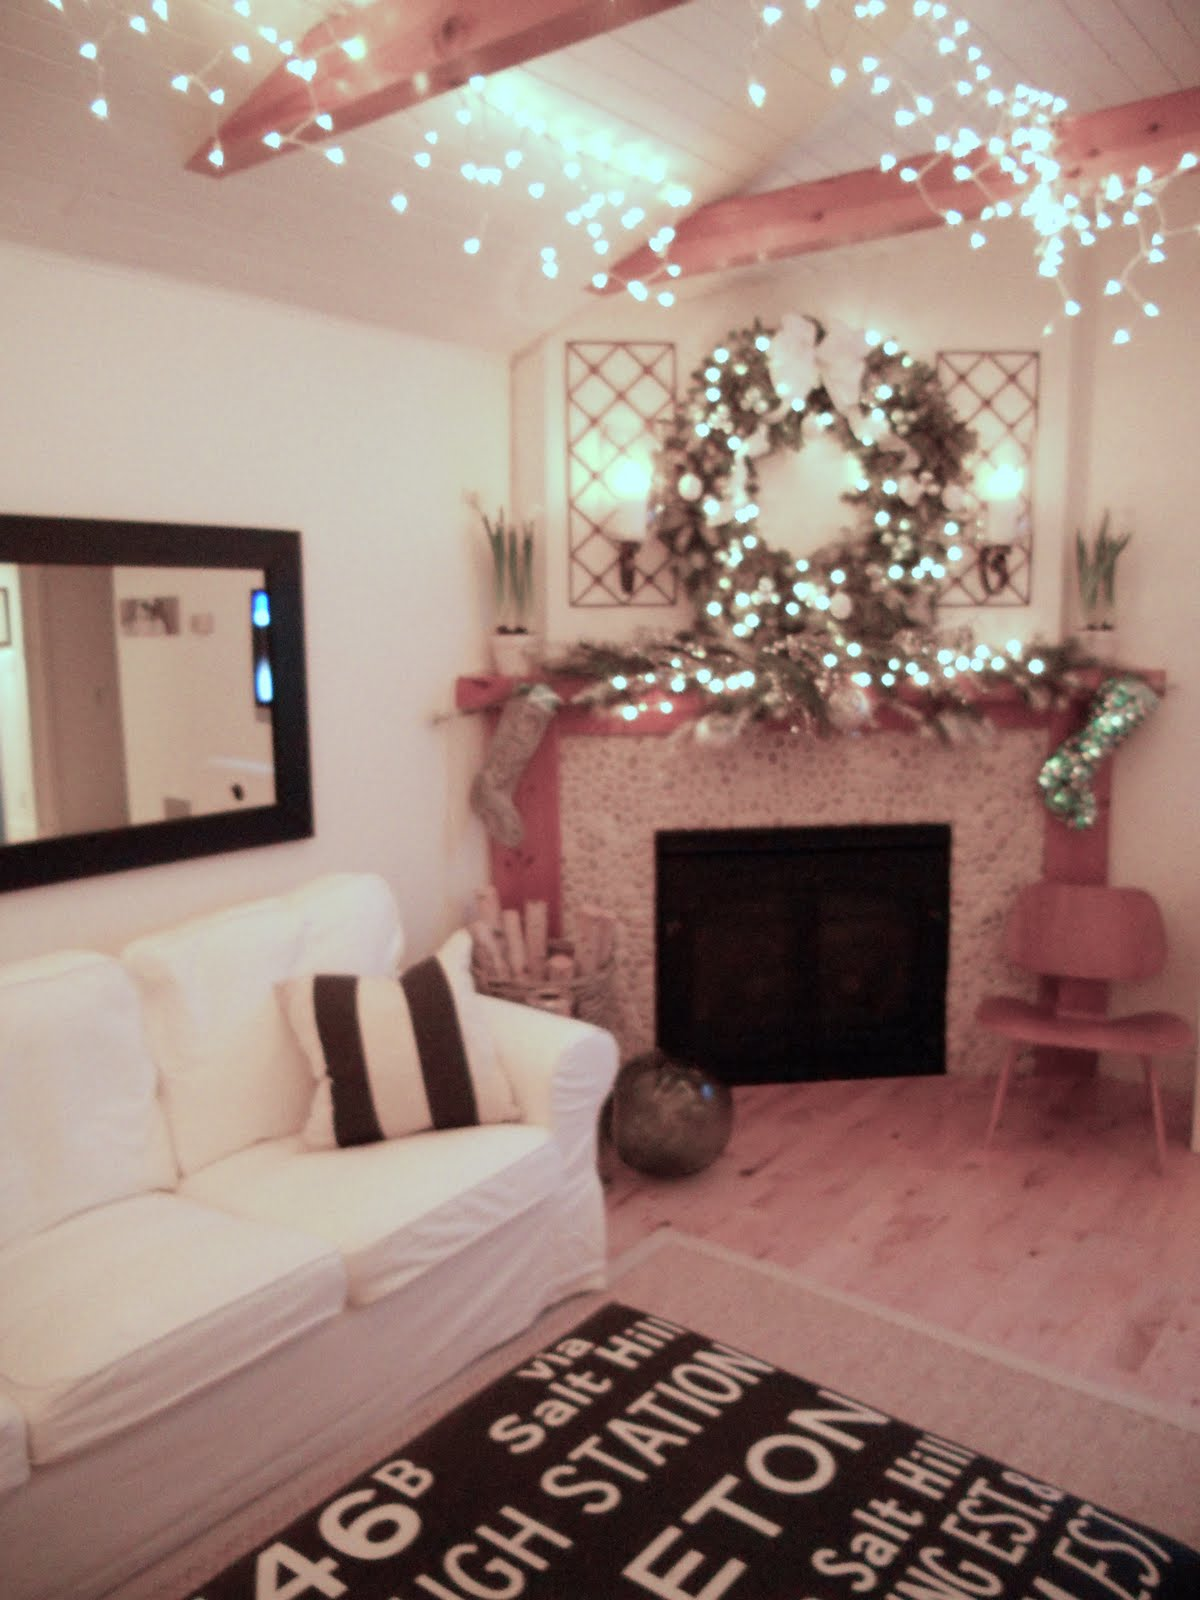 Portland oregon interior design blog my home at christmas - Light decorations for living room ...